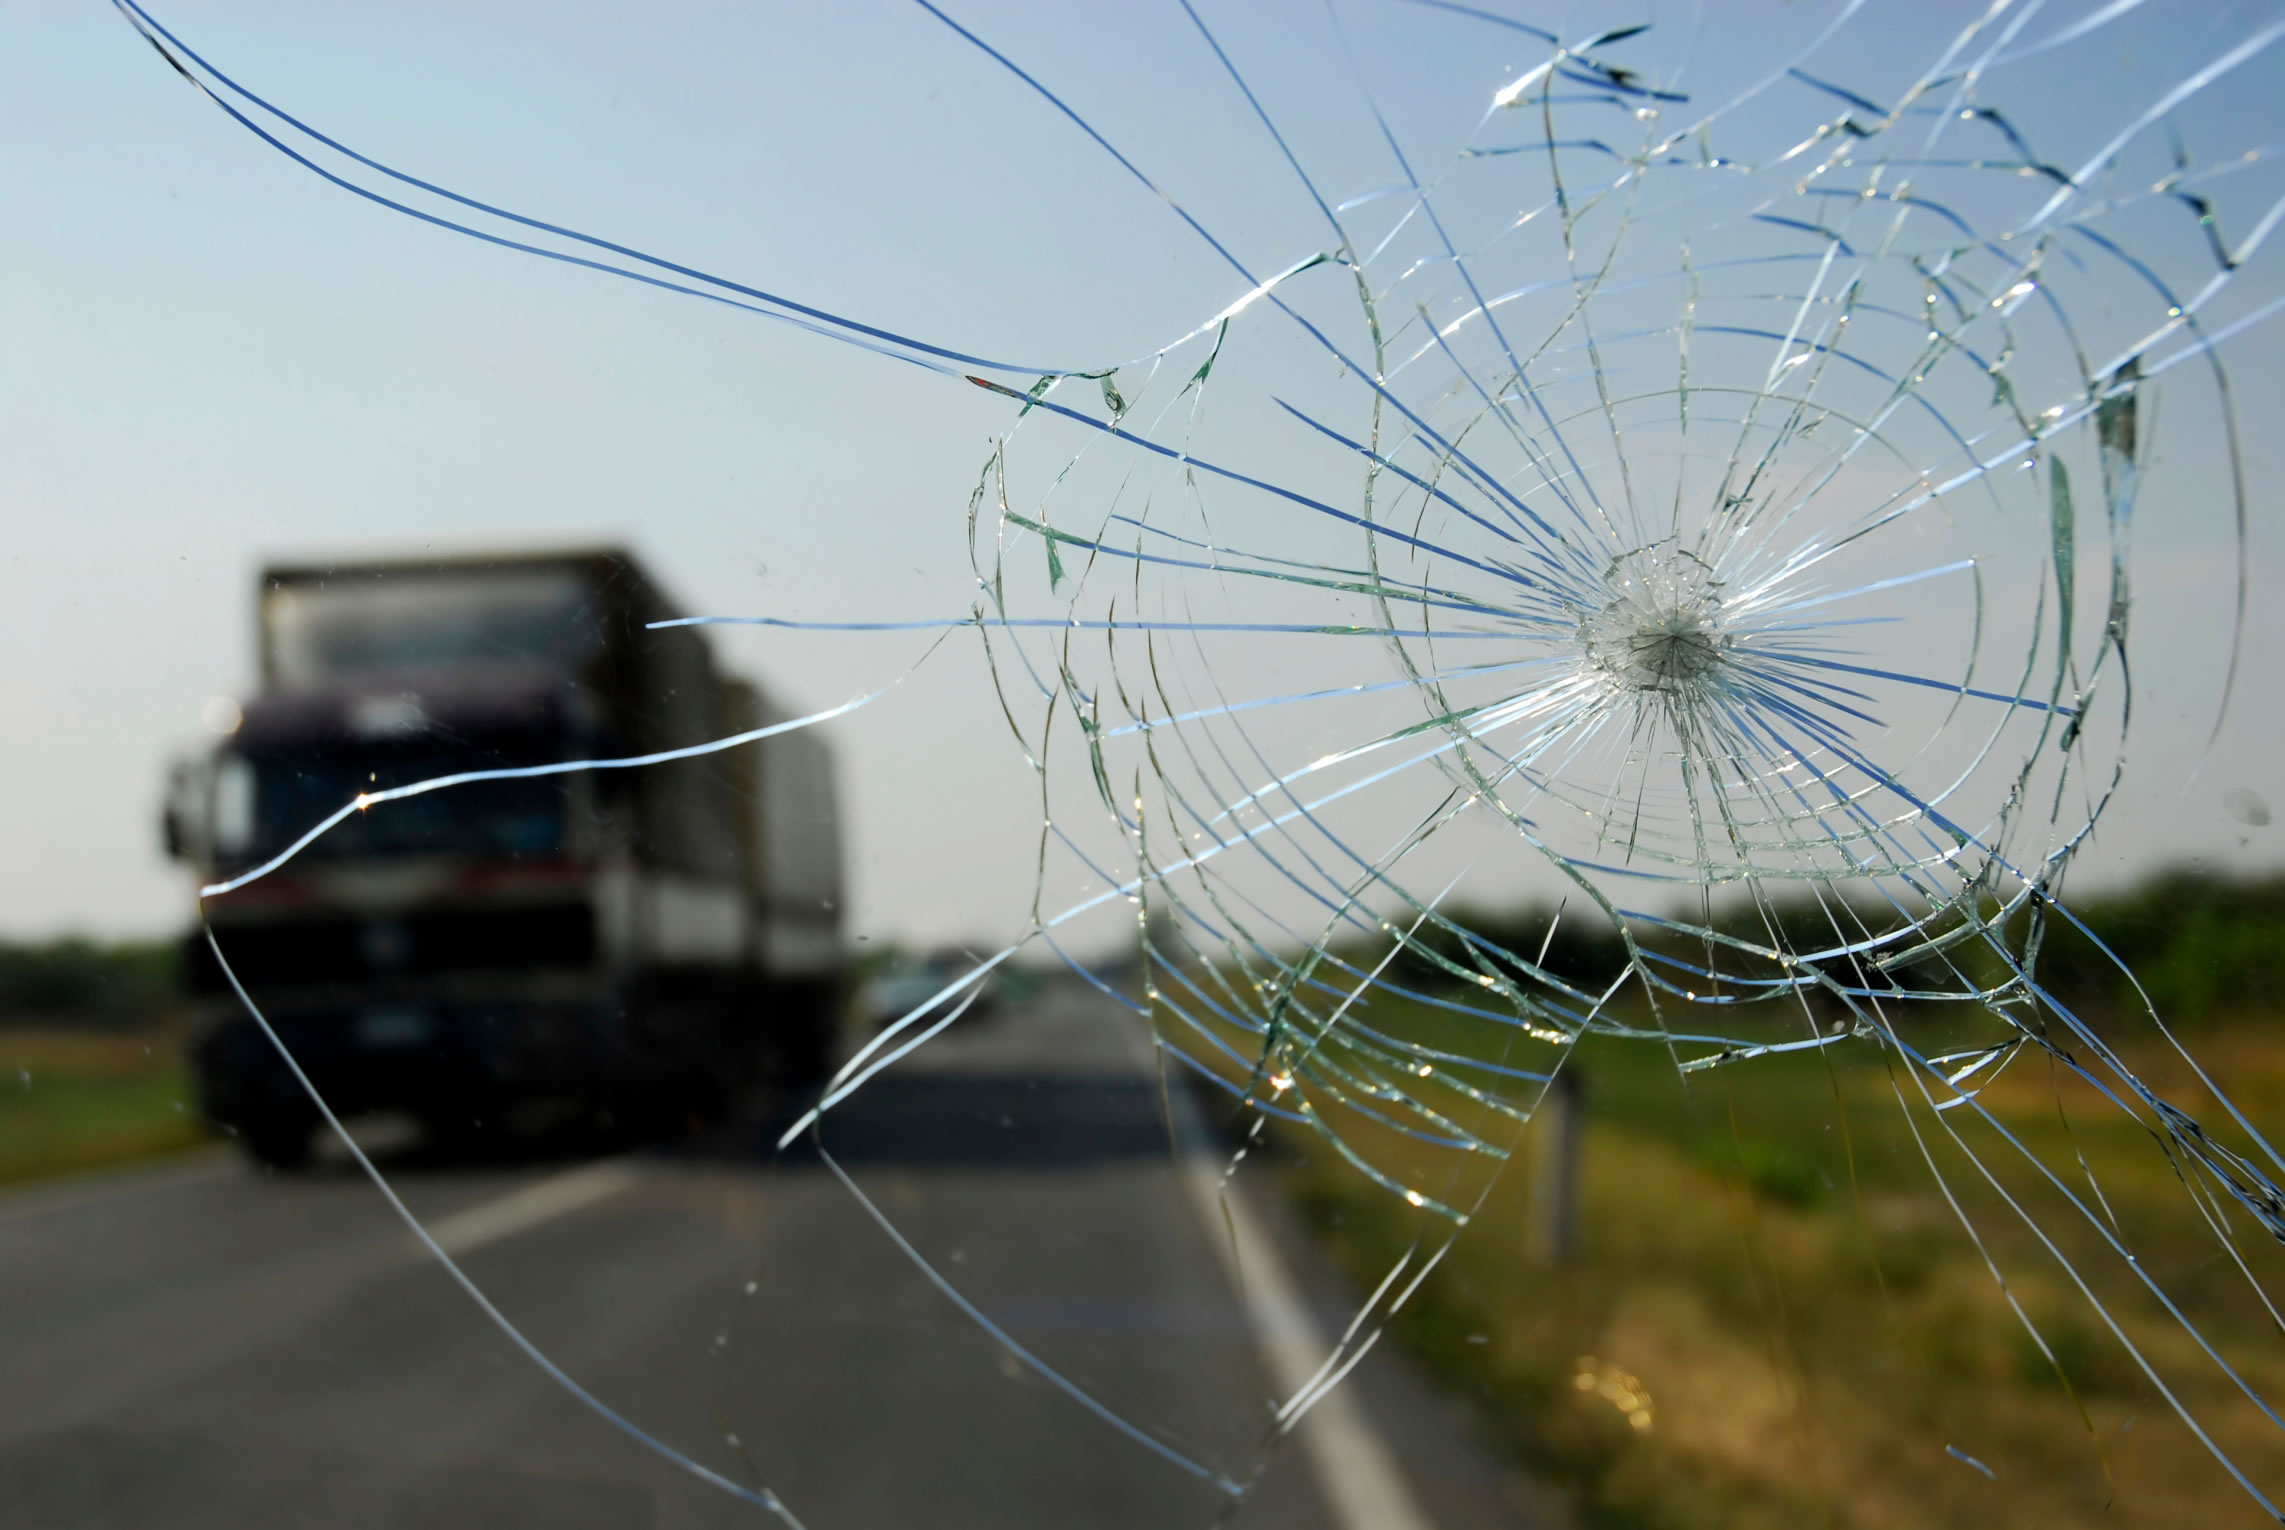 Does Commercial Auto Insurance Cover Windshield Damage?